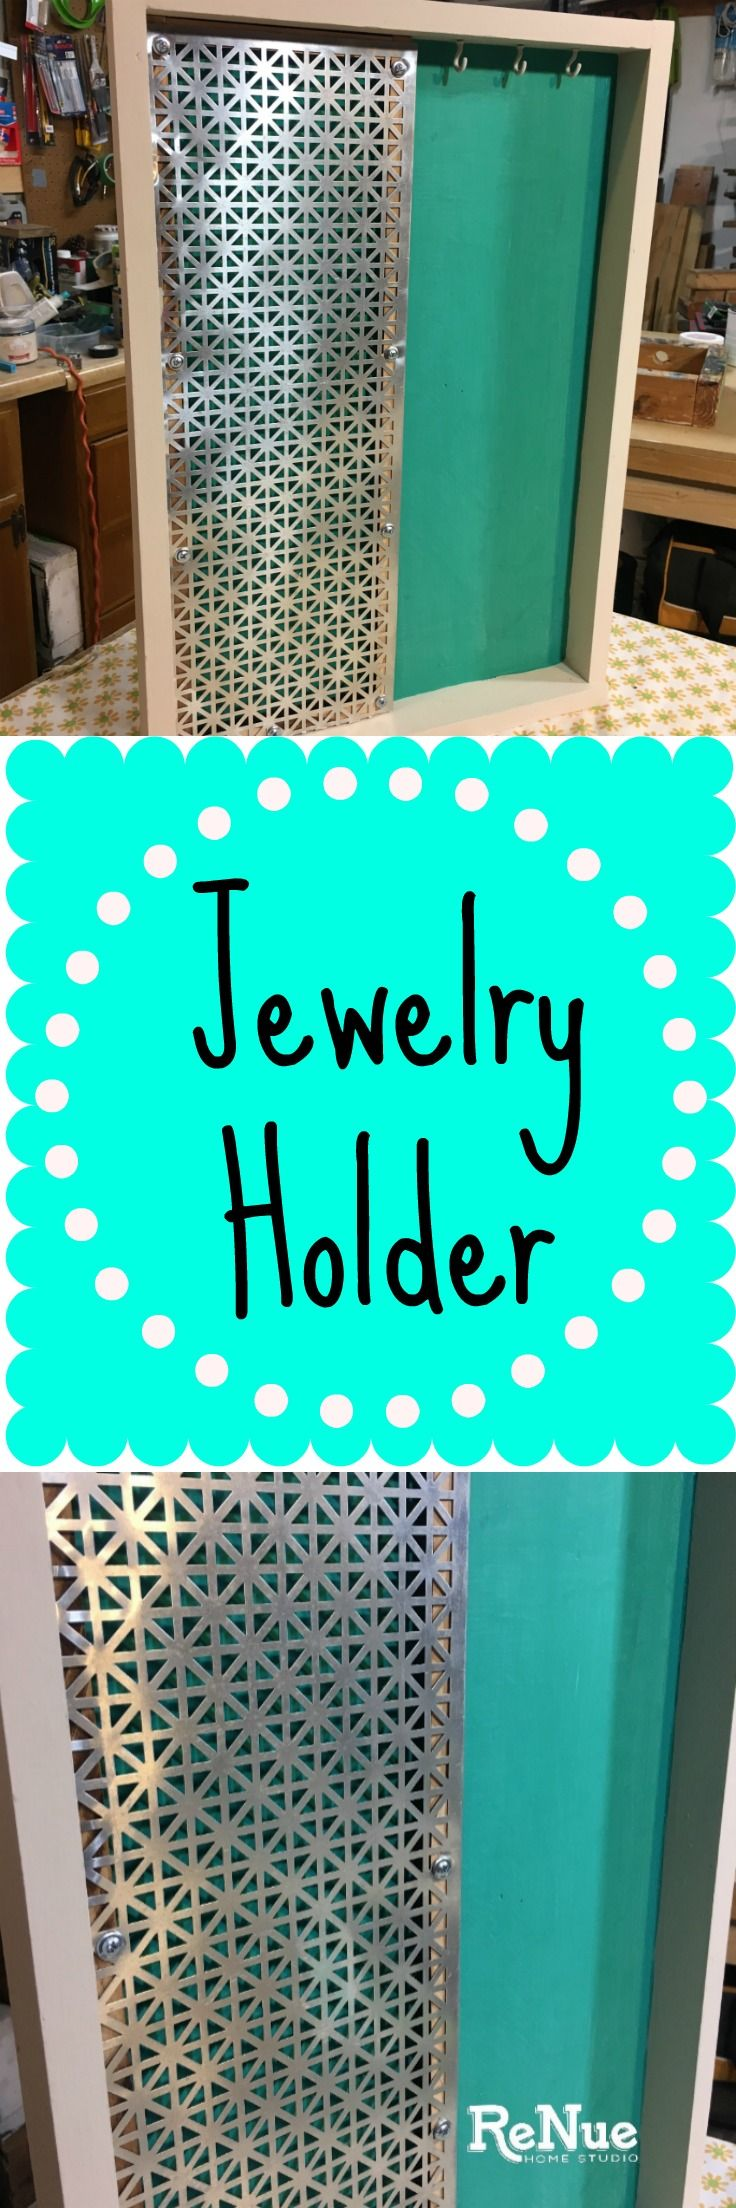 Learn how to make this DIY Jewelry Holder out of a reclaimed drawer and a decorative metal sheet.   Do It Yourself, Earring, Organizer, Storage, Store, Necklace, Necklaces, Bracelet, Bracelets, Hanger, Repurpose, Repurposed, Amy Howard, Paint, Hobby, Craft, Crafts, Crafting, Jewelry Hook, Hooks, Ryobi, Makita, Saw, Drill,